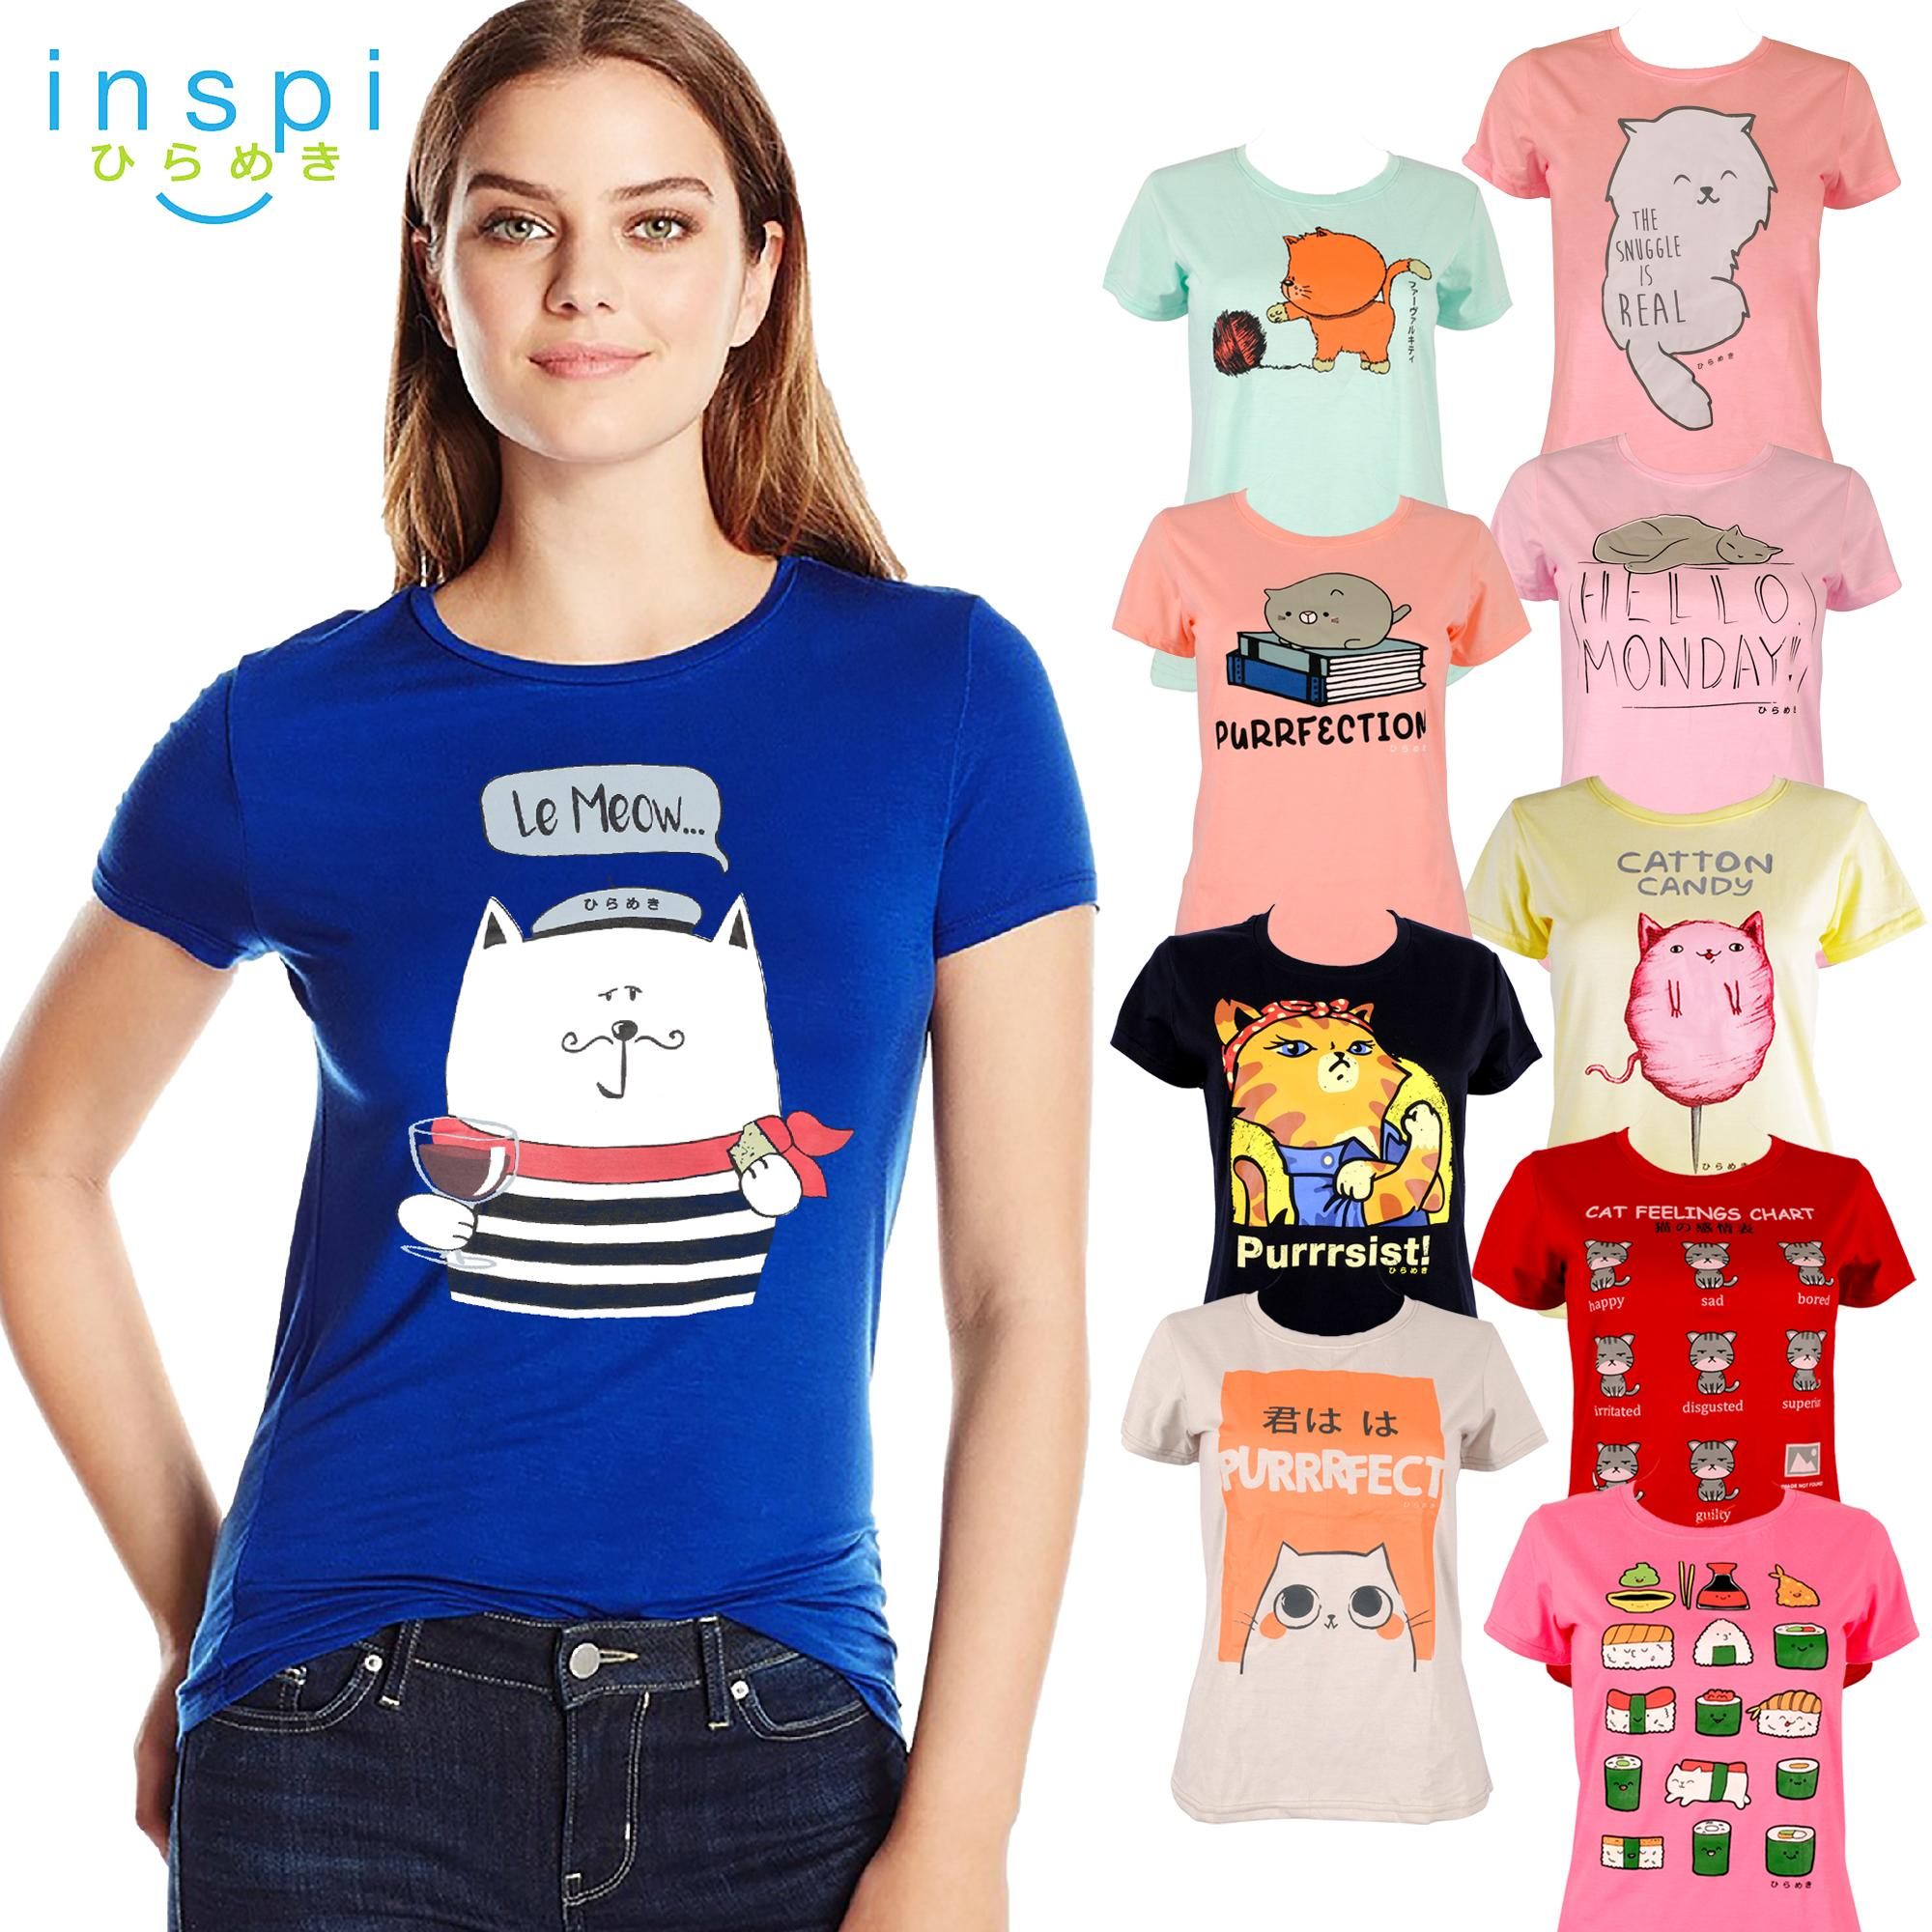 8d3121d5d26 INSPI Tees Ladies Neko Collection tshirt printed graphic tee Ladies t shirt  shirts women tshirts for